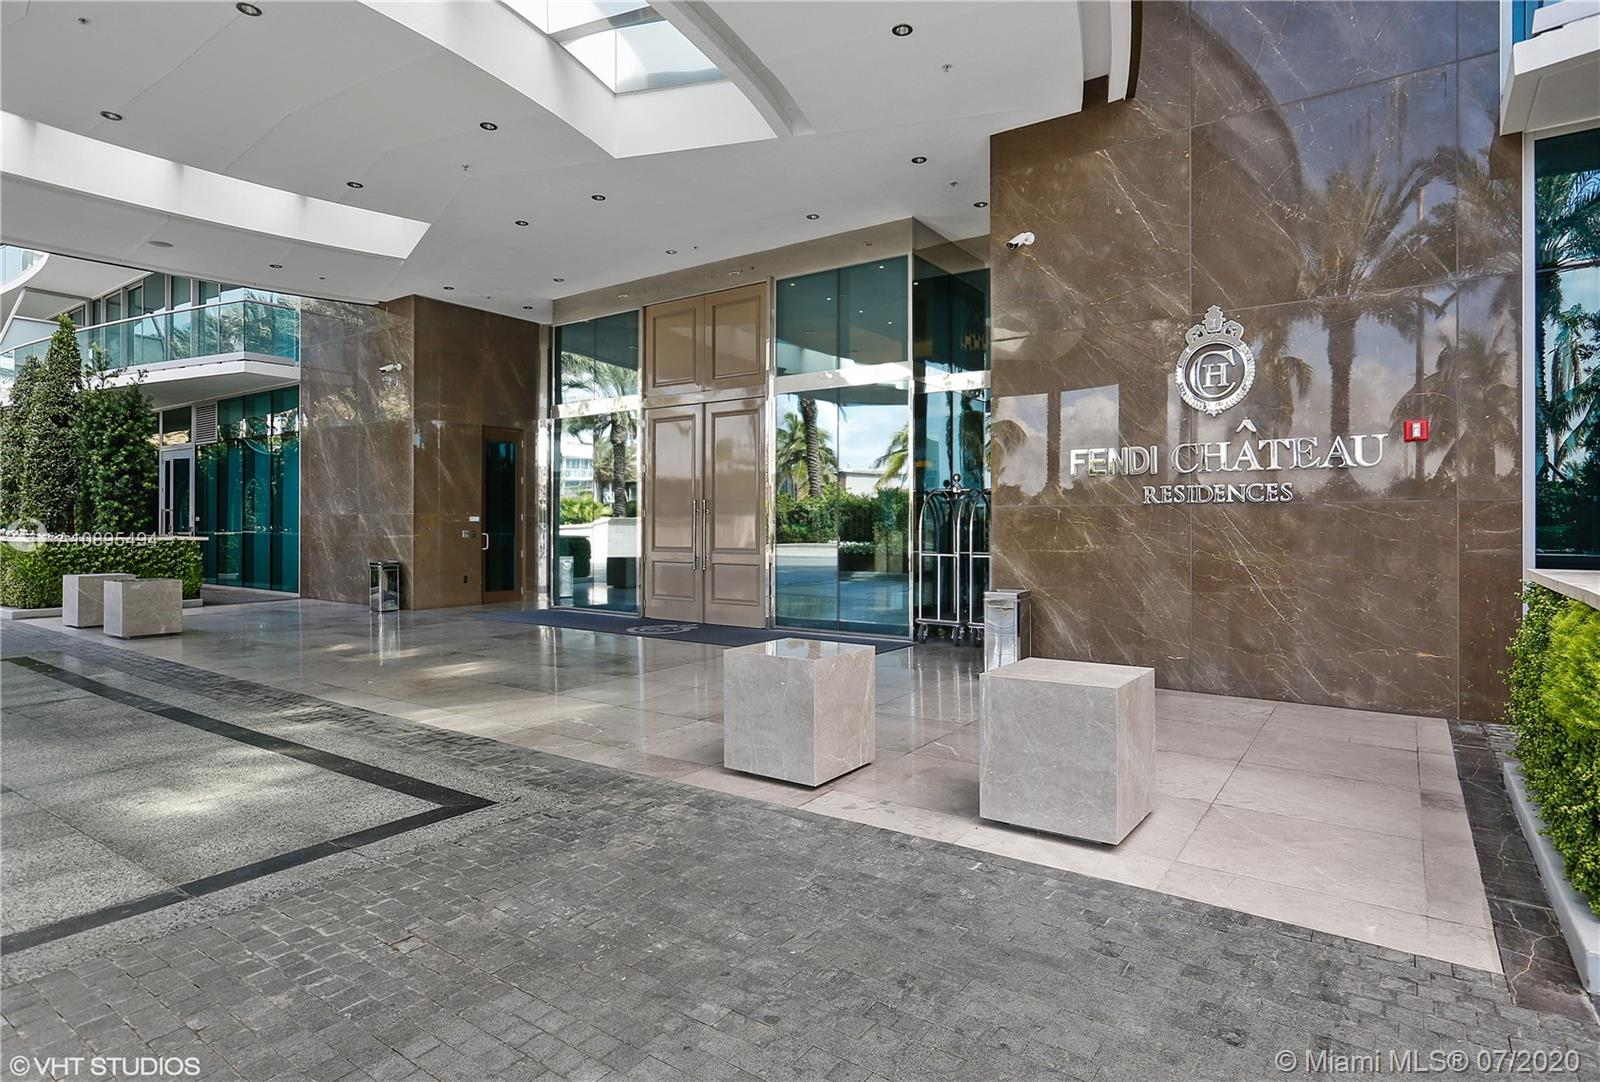 9349 Collins Ave, Unit #303 Luxury Real Estate